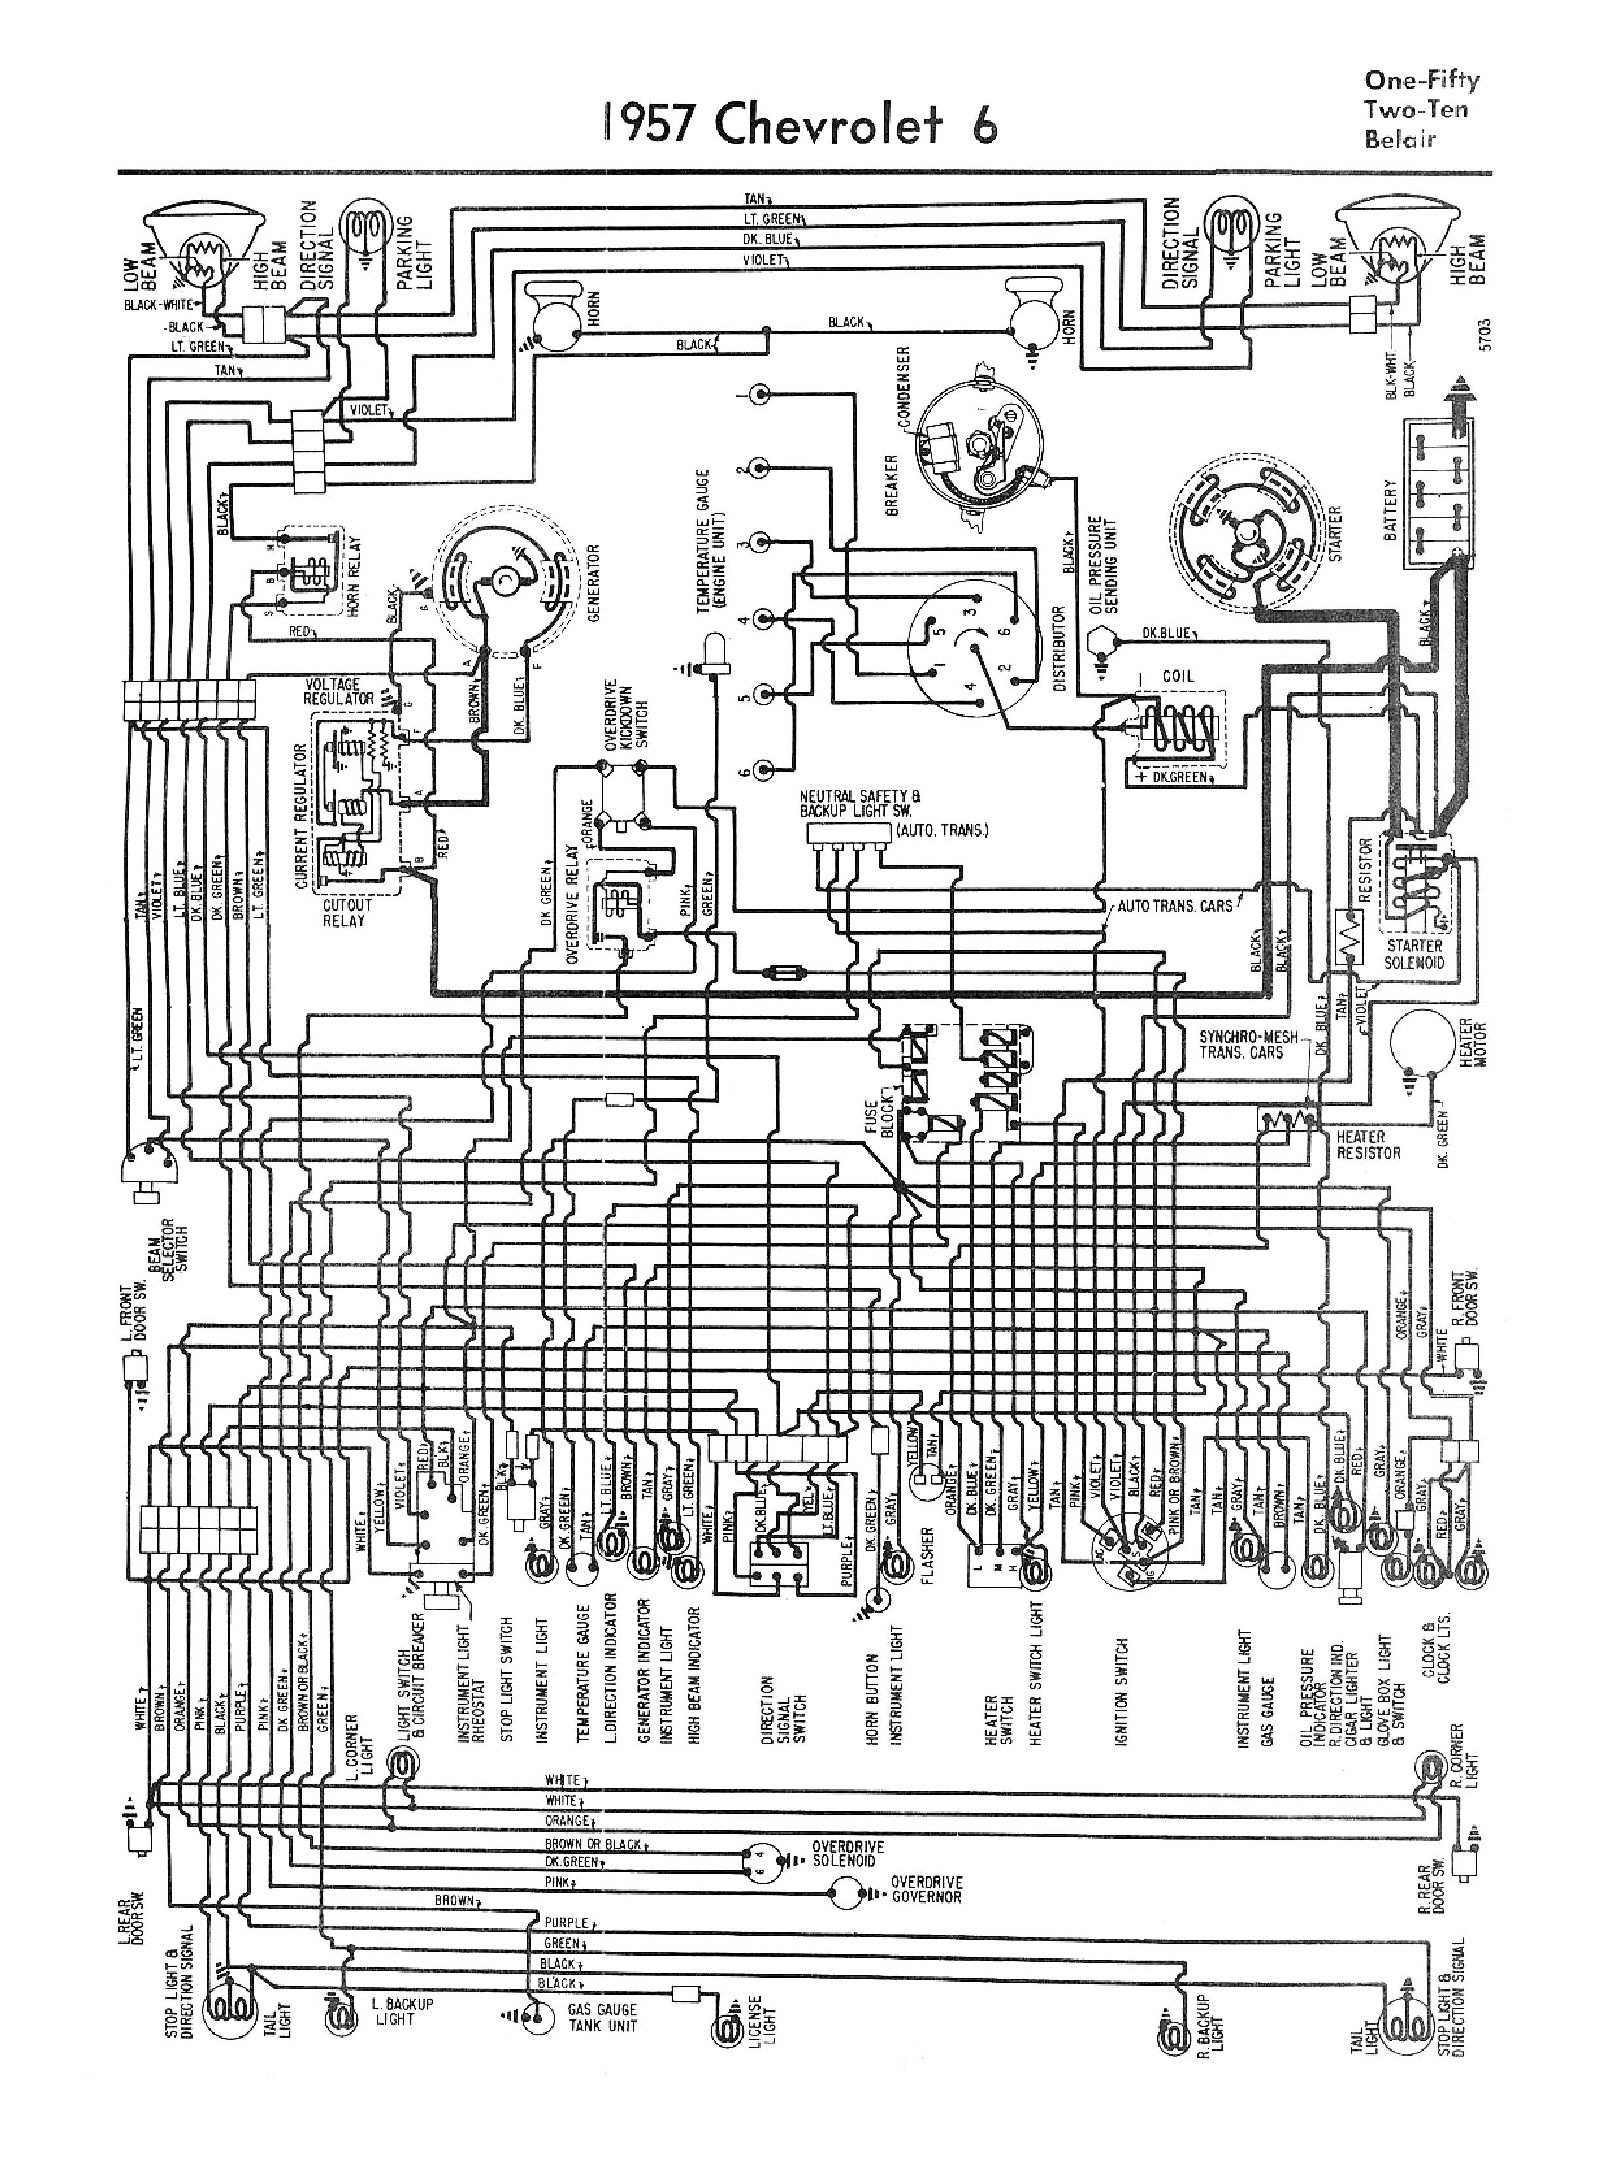 wiring diagram corvette the wiring diagram 1979 corvette wiring diagram schematics and wiring diagrams wiring diagram